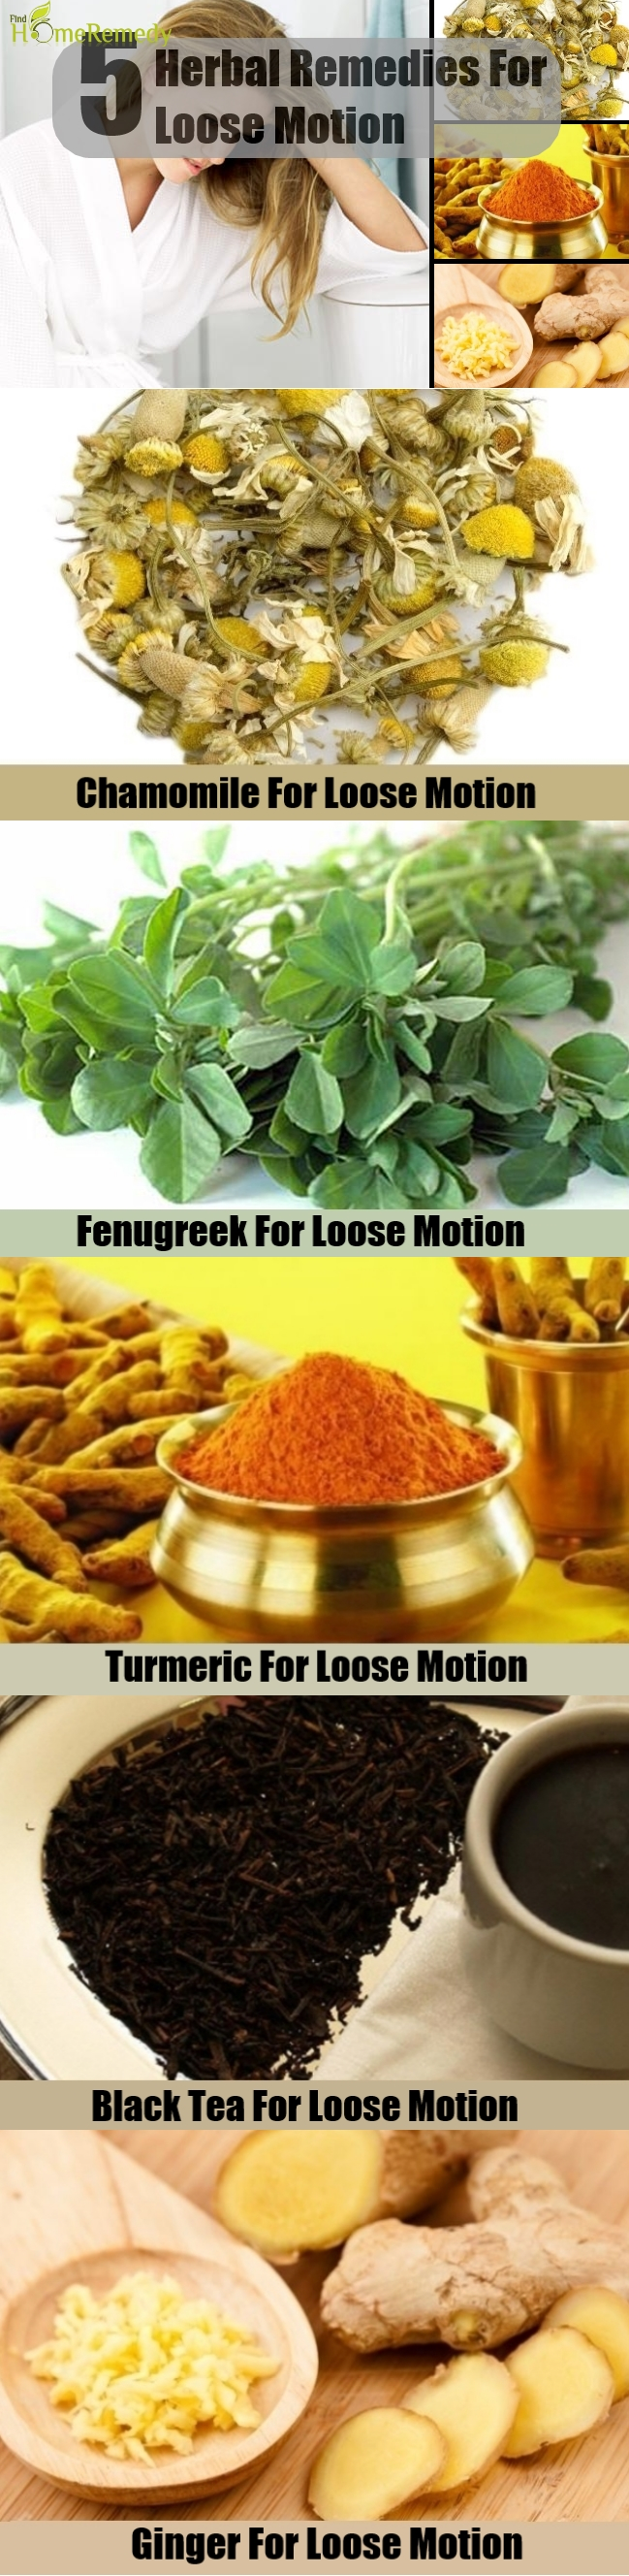 5 Herbal Remedies For Loose Motion